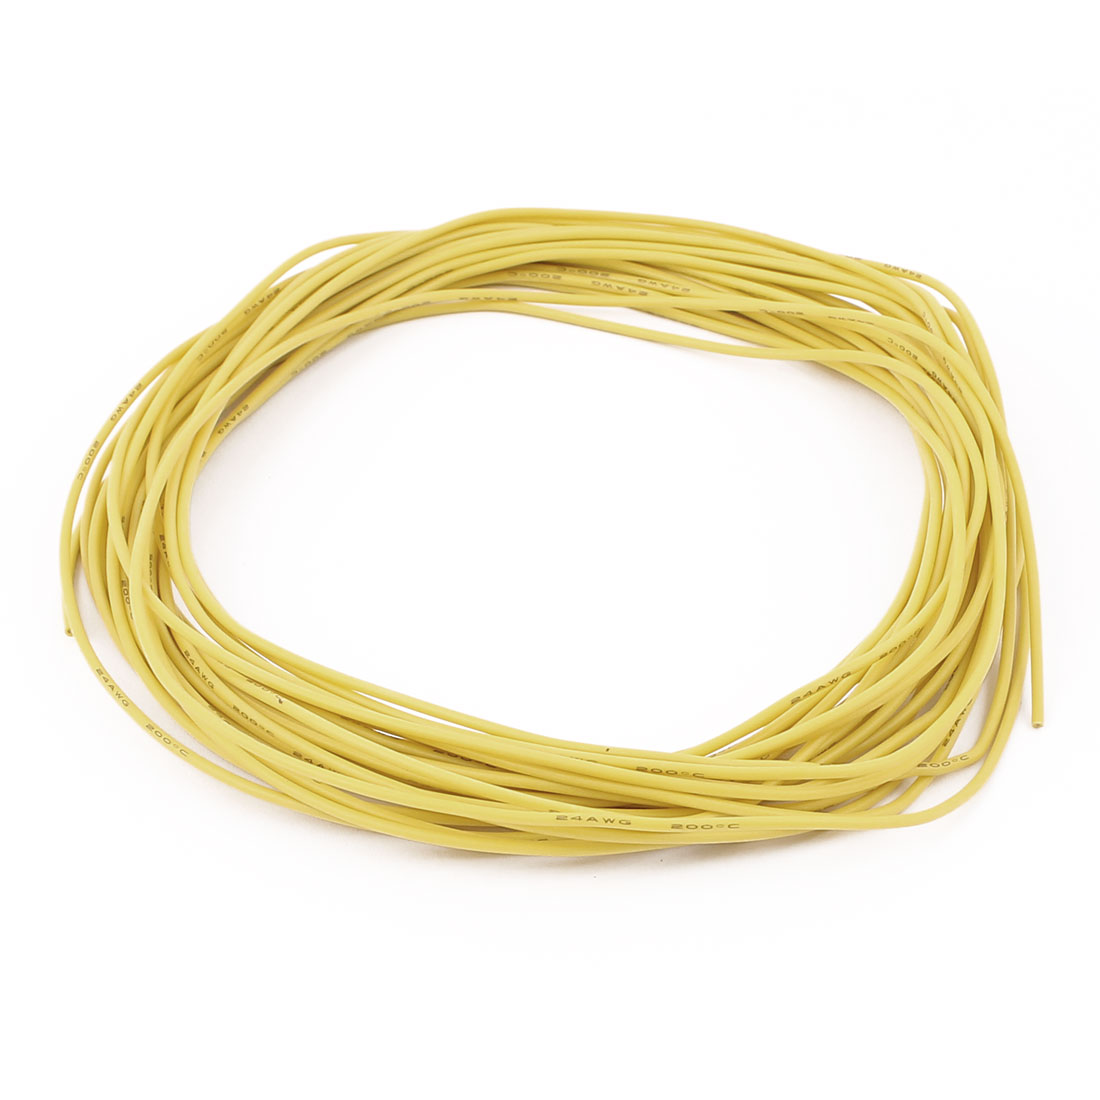 10M 24AWG Electric Copper Core Flexible Silicone Wire Cable Yellow